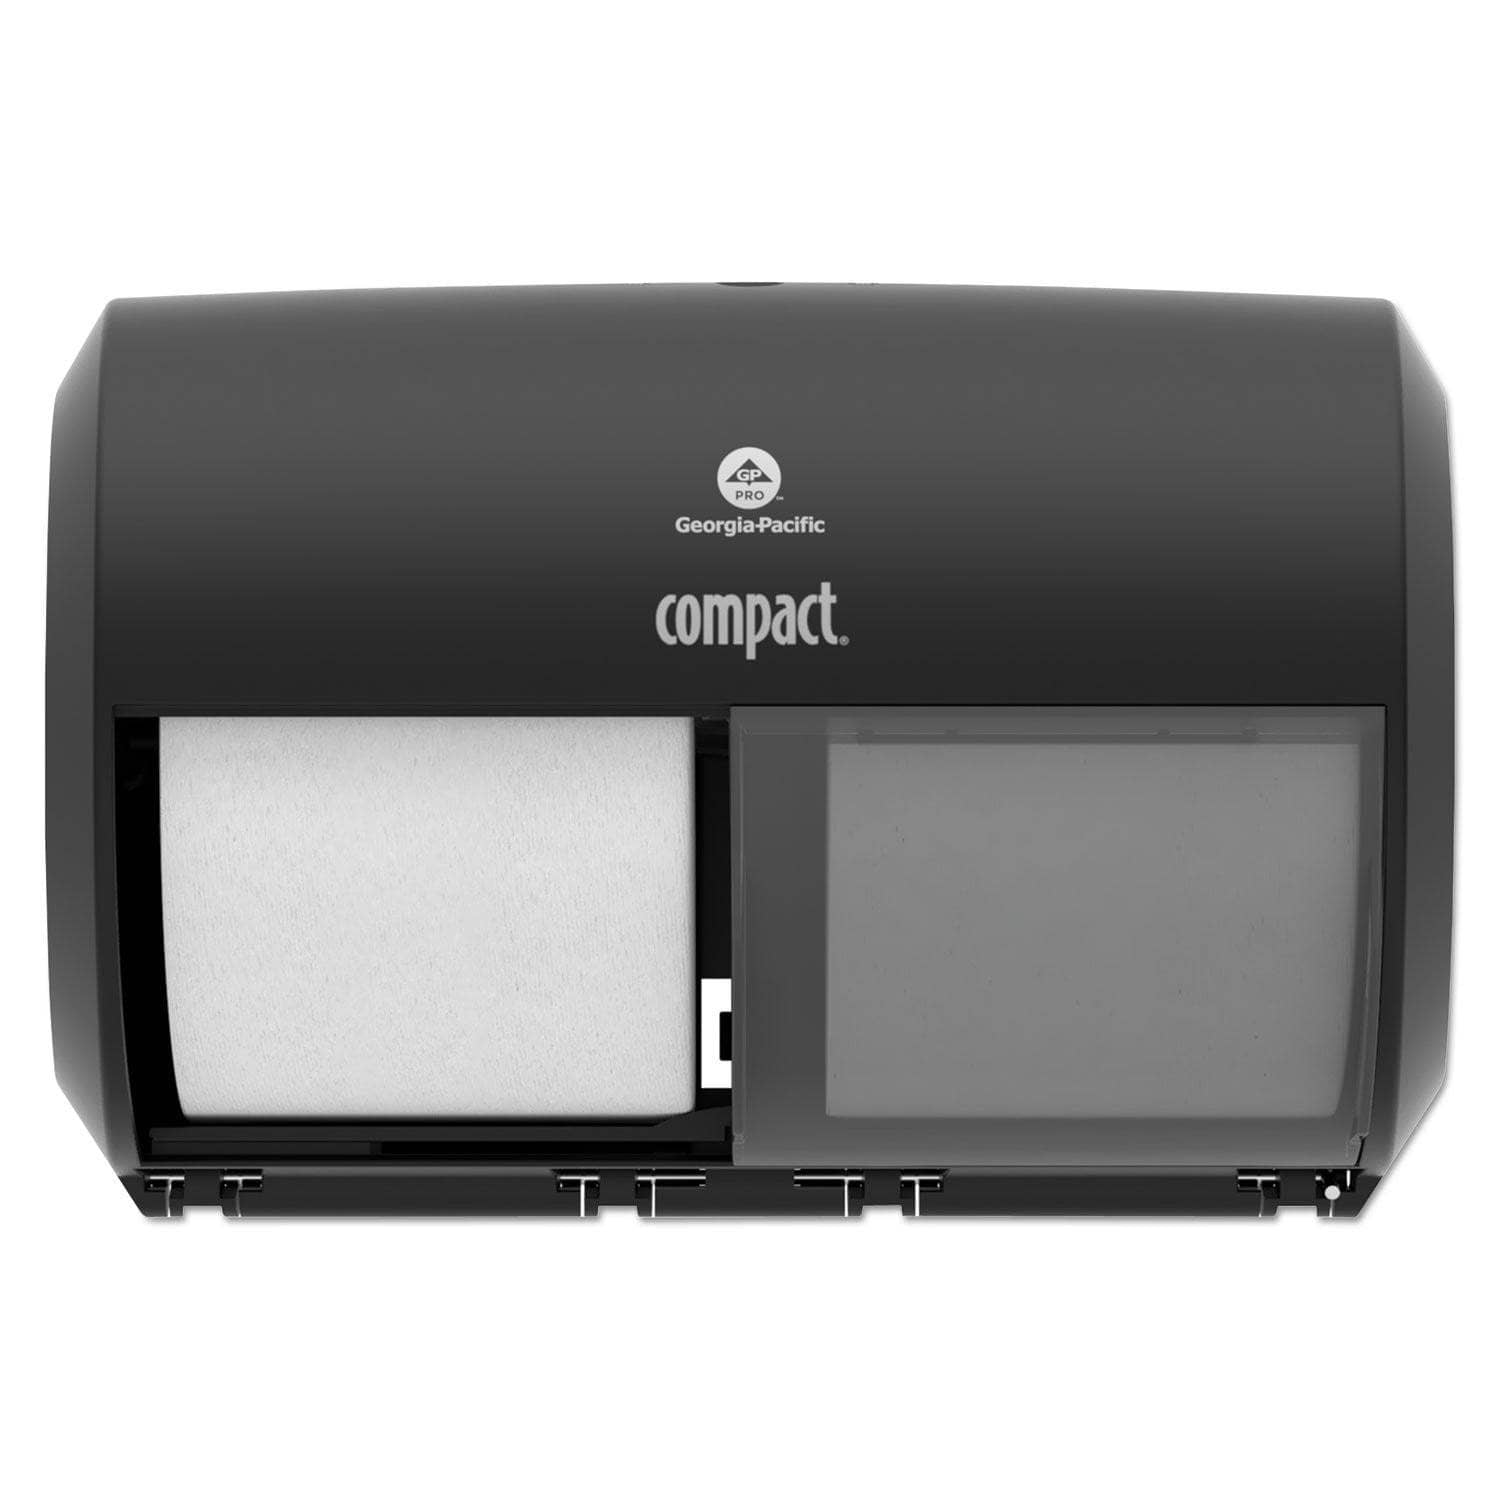 Georgia Pacific Compact Coreless Side-By-Side 2-Roll Tissue Dispenser, 11.5 X 7.625 X 8, Black - GPC56784A - TotalRestroom.com